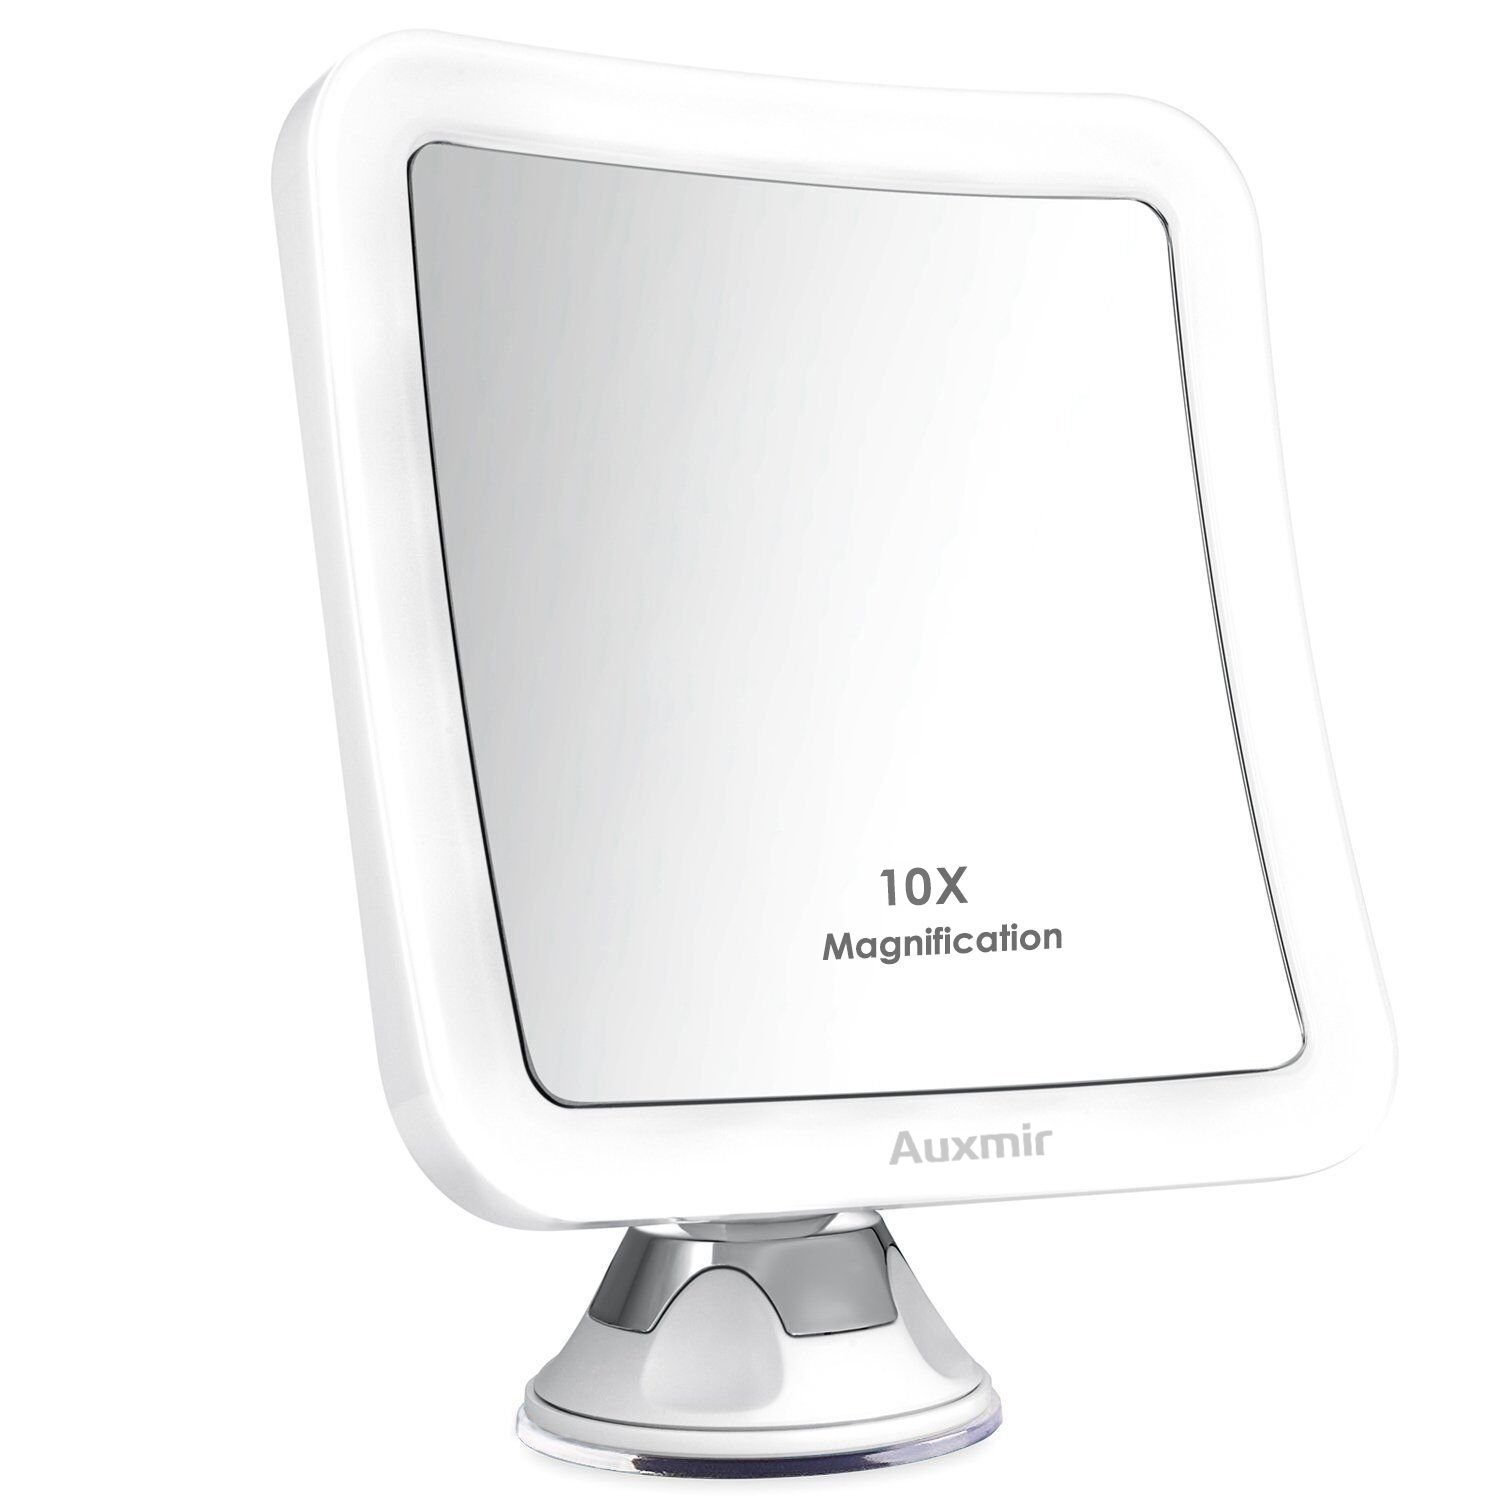 Auxmir LED Makeup Mirror 7X Magnifying Lighted Cosmetic Mirror with Suction Base for Makeup, Shaving and Tweezing, Home and Travel, Square